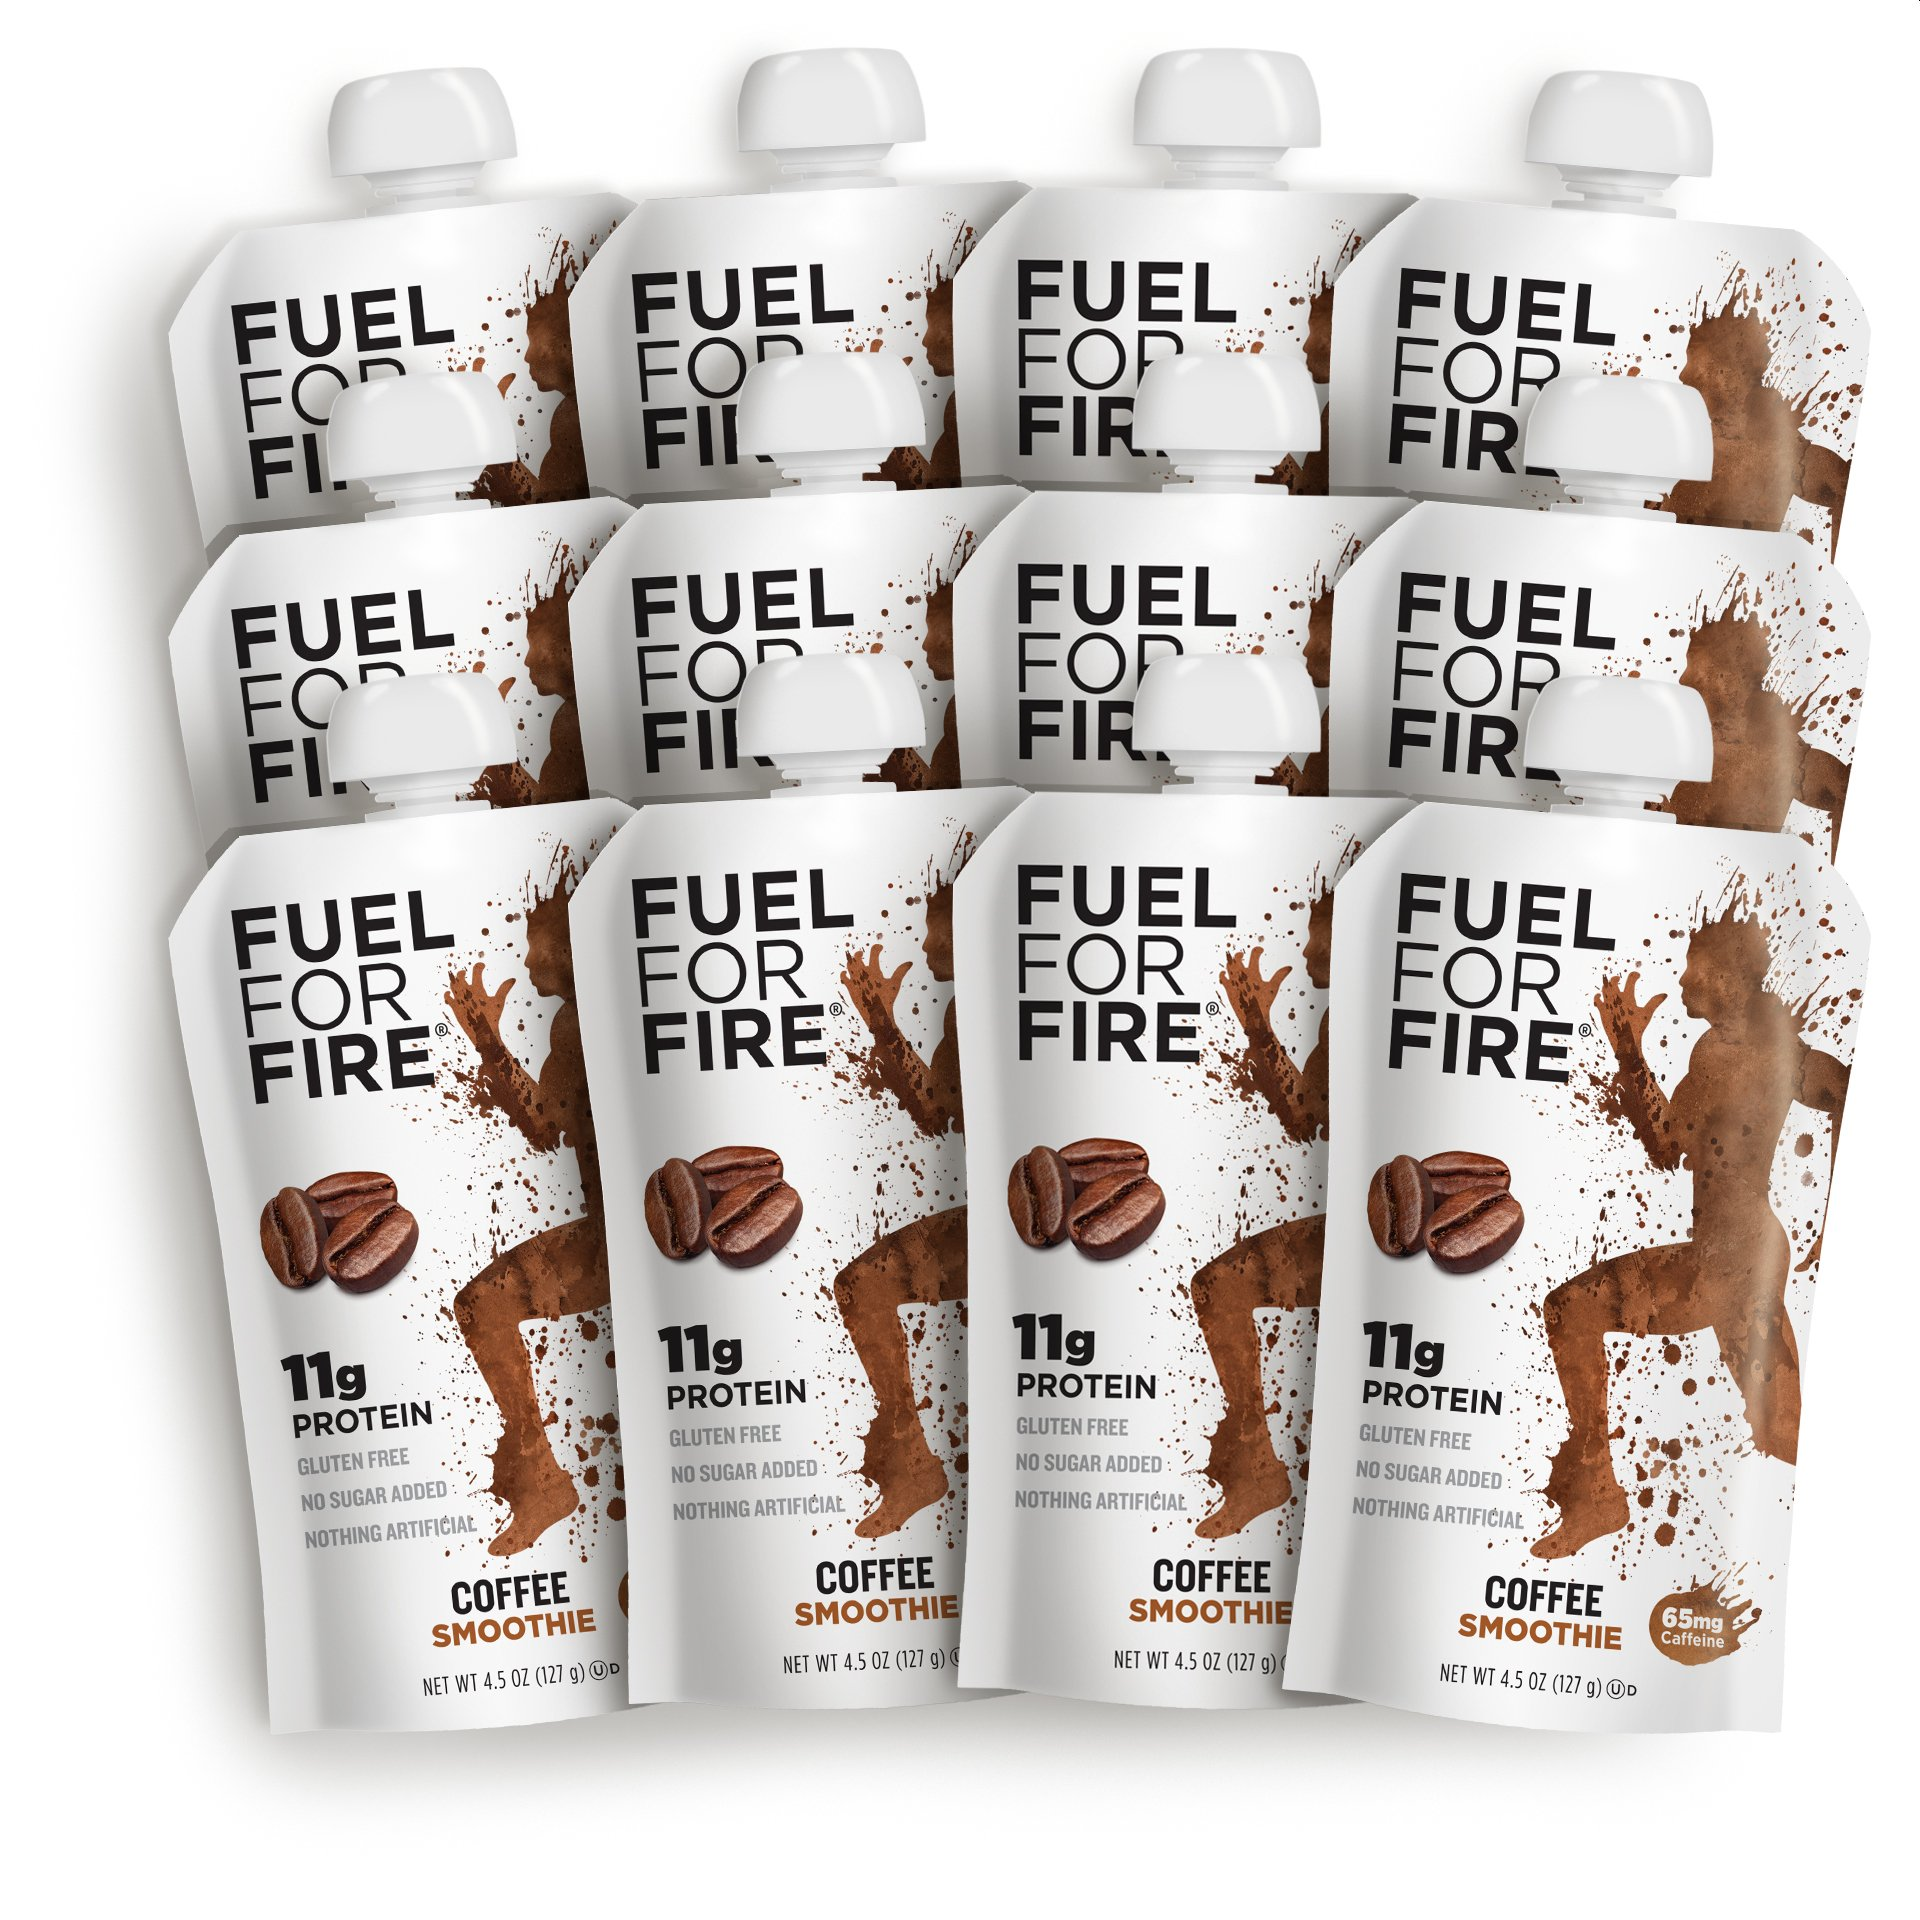 Fuel For Fire - Coffee (12 Pack) Fruit & Protein Smoothie Squeeze Pouch | Perfect for Workouts, Kids, Snacking - Gluten-Free, Soy-Free, Kosher (4.5 ounce pouches) by FUEL FOR FIRE